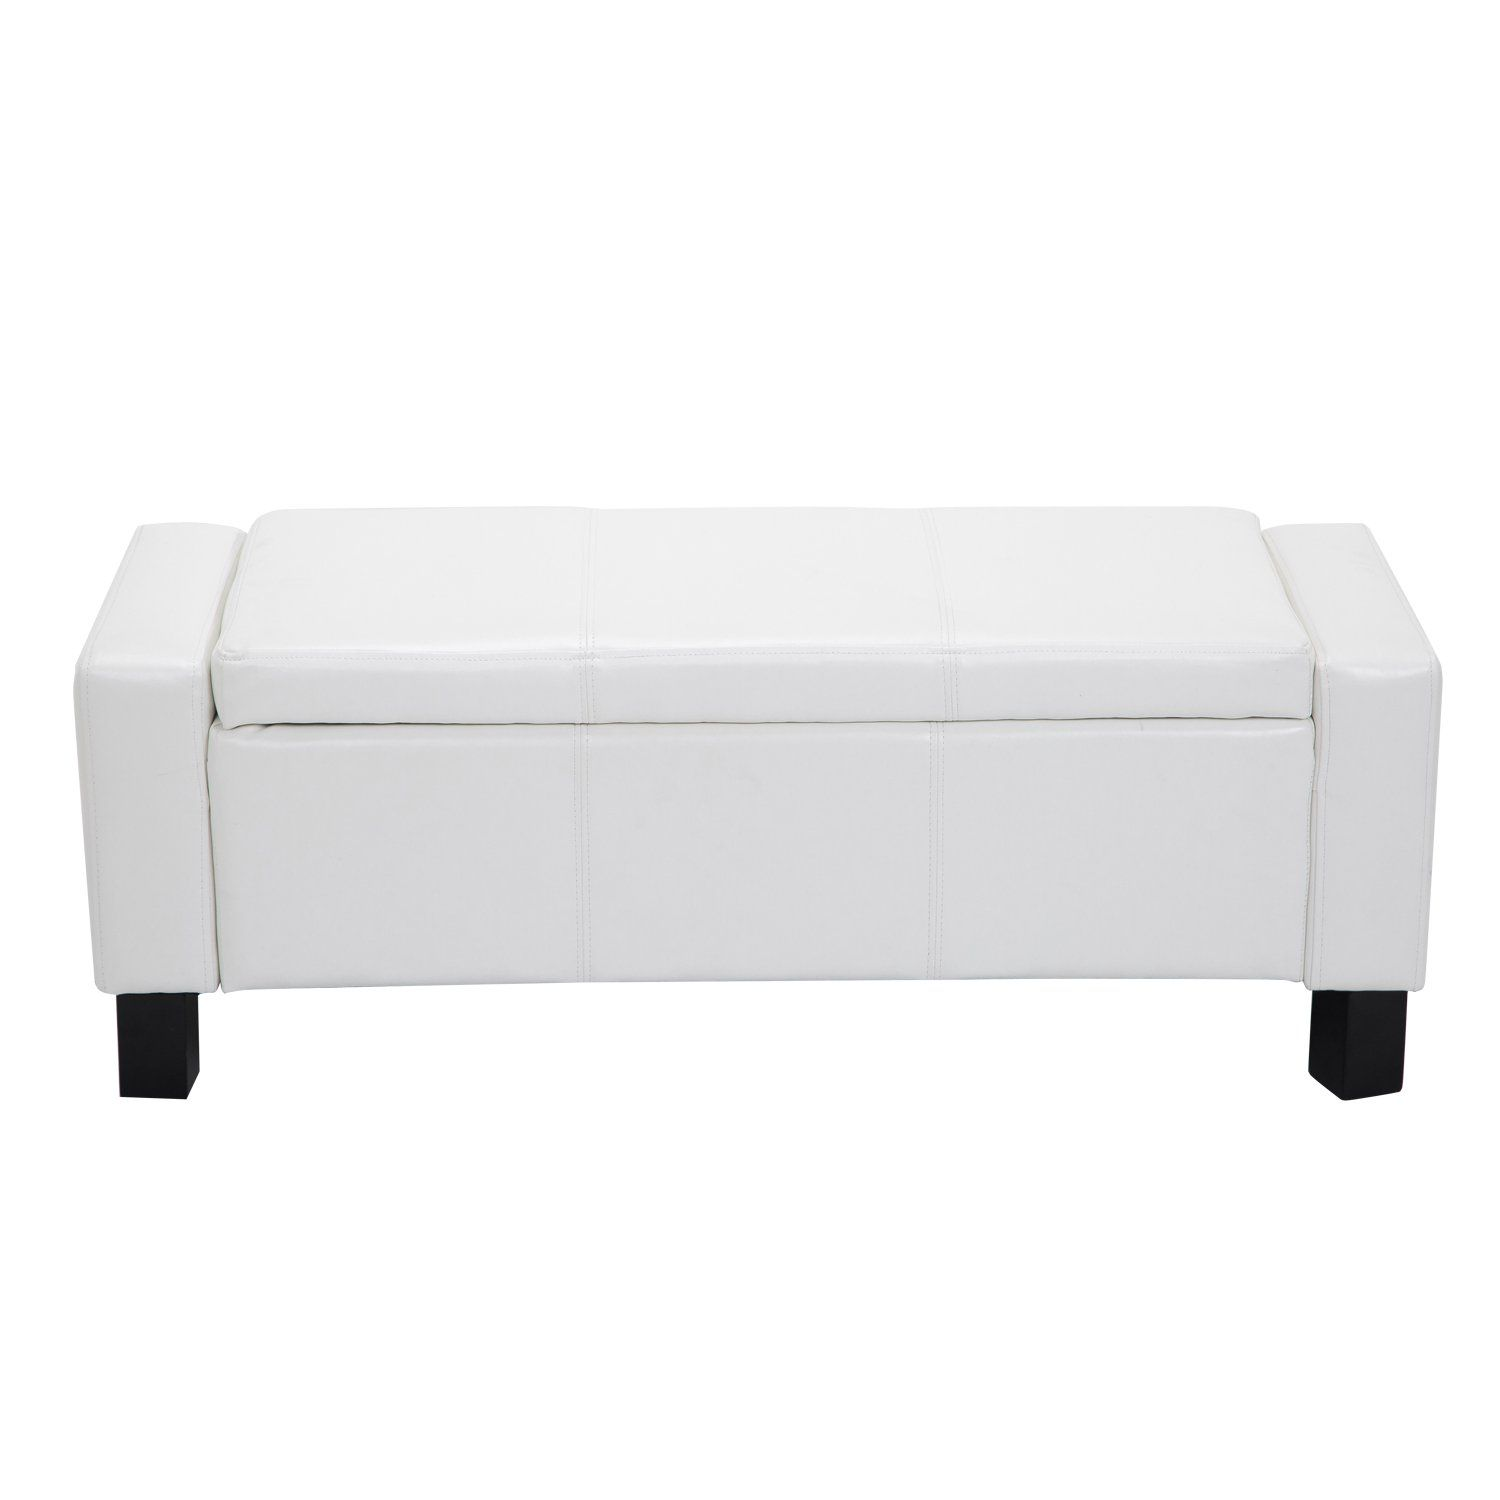 Homcom 43 Faux Leather Ottoman Storage Bench White Be Sure To Check Out This Awesome Product Storage Ottoman Bench Leather Storage Ottoman Storage Ottoman